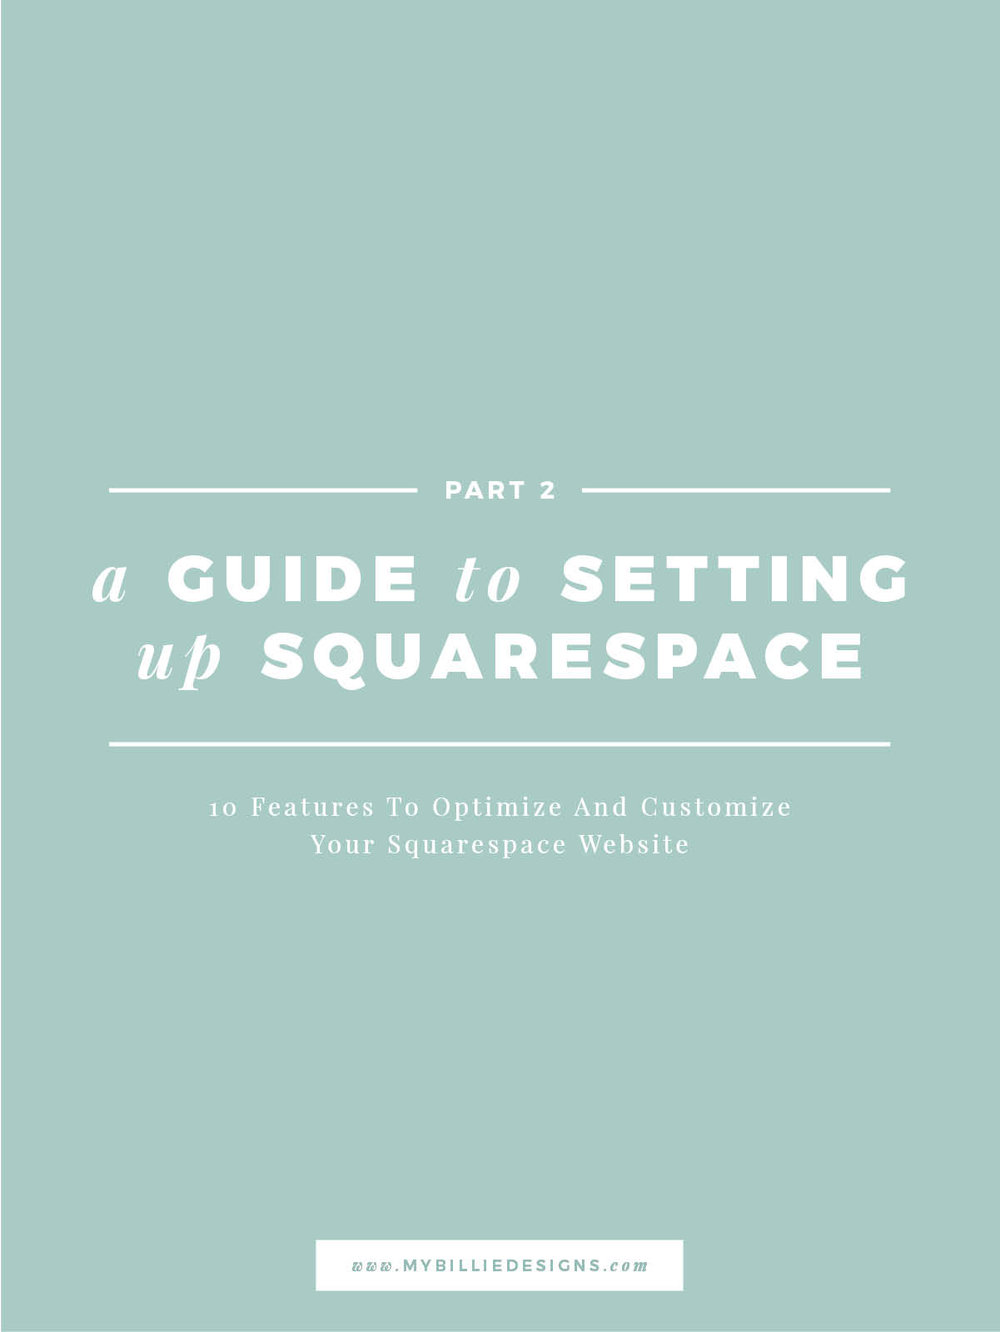 A guide to setting up your Squarespace website (Part 2).jpg